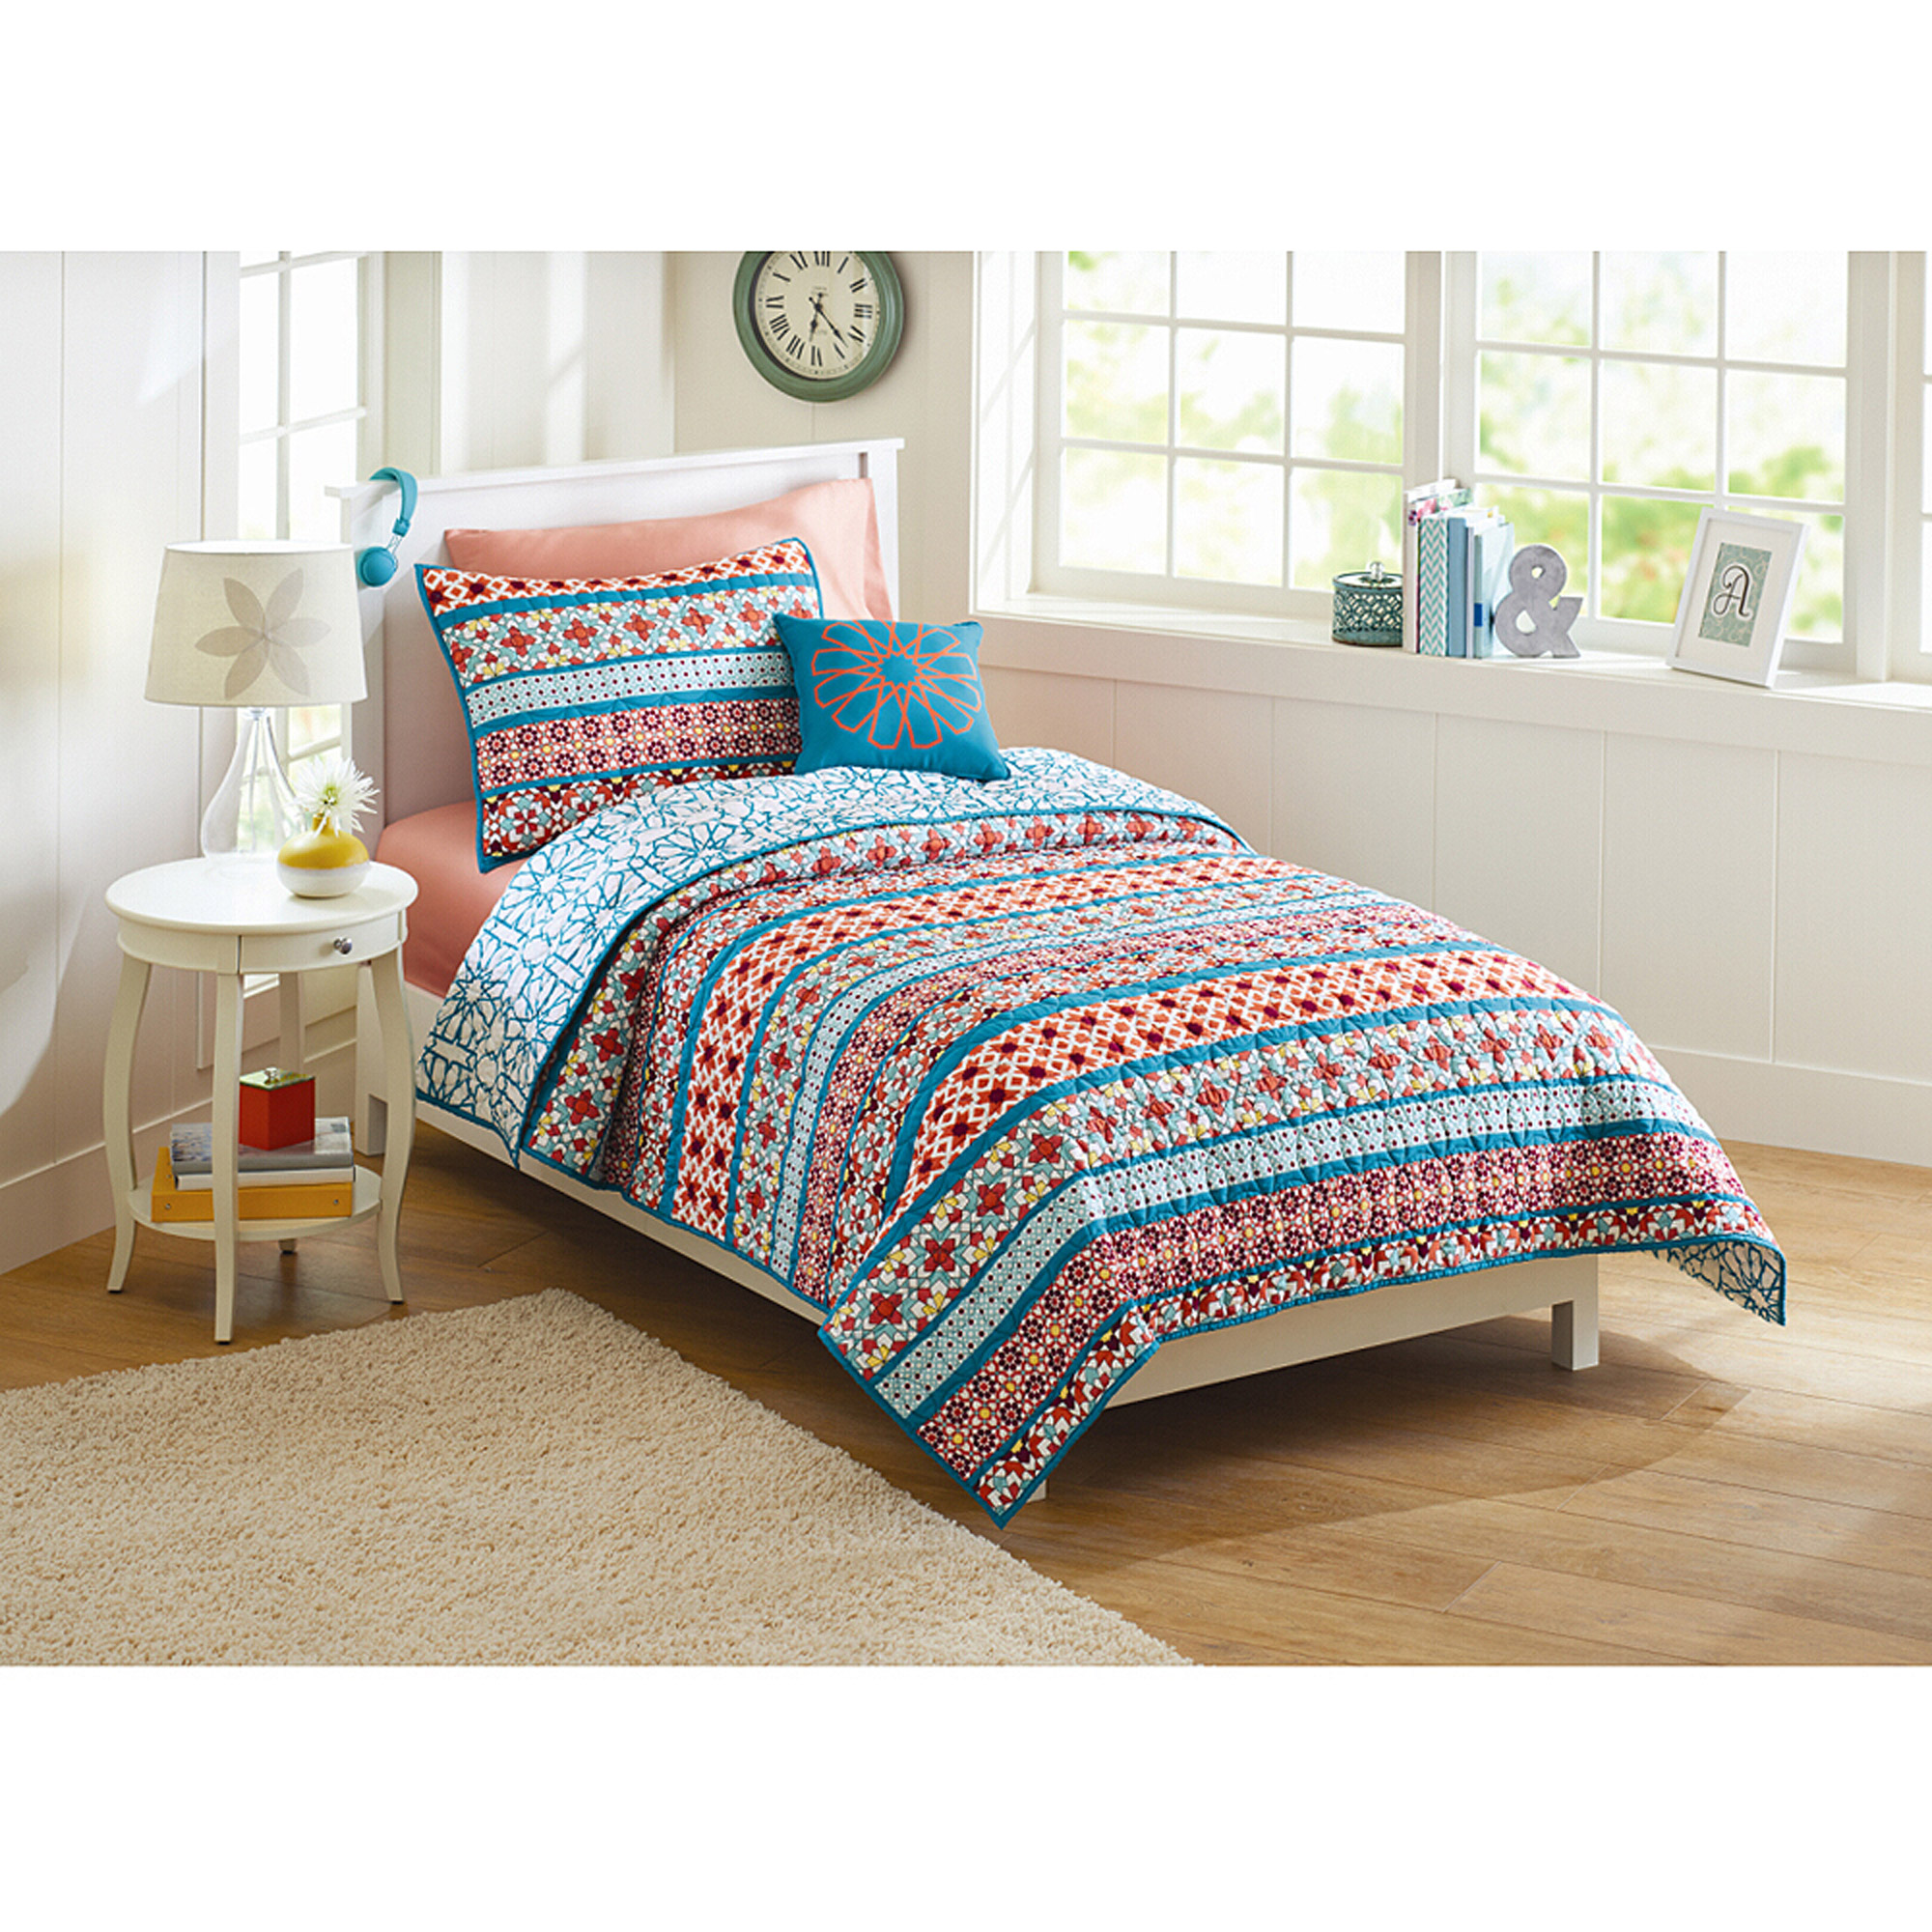 Better Homes and Gardens Turkish Medallion Quilt Bedding Set